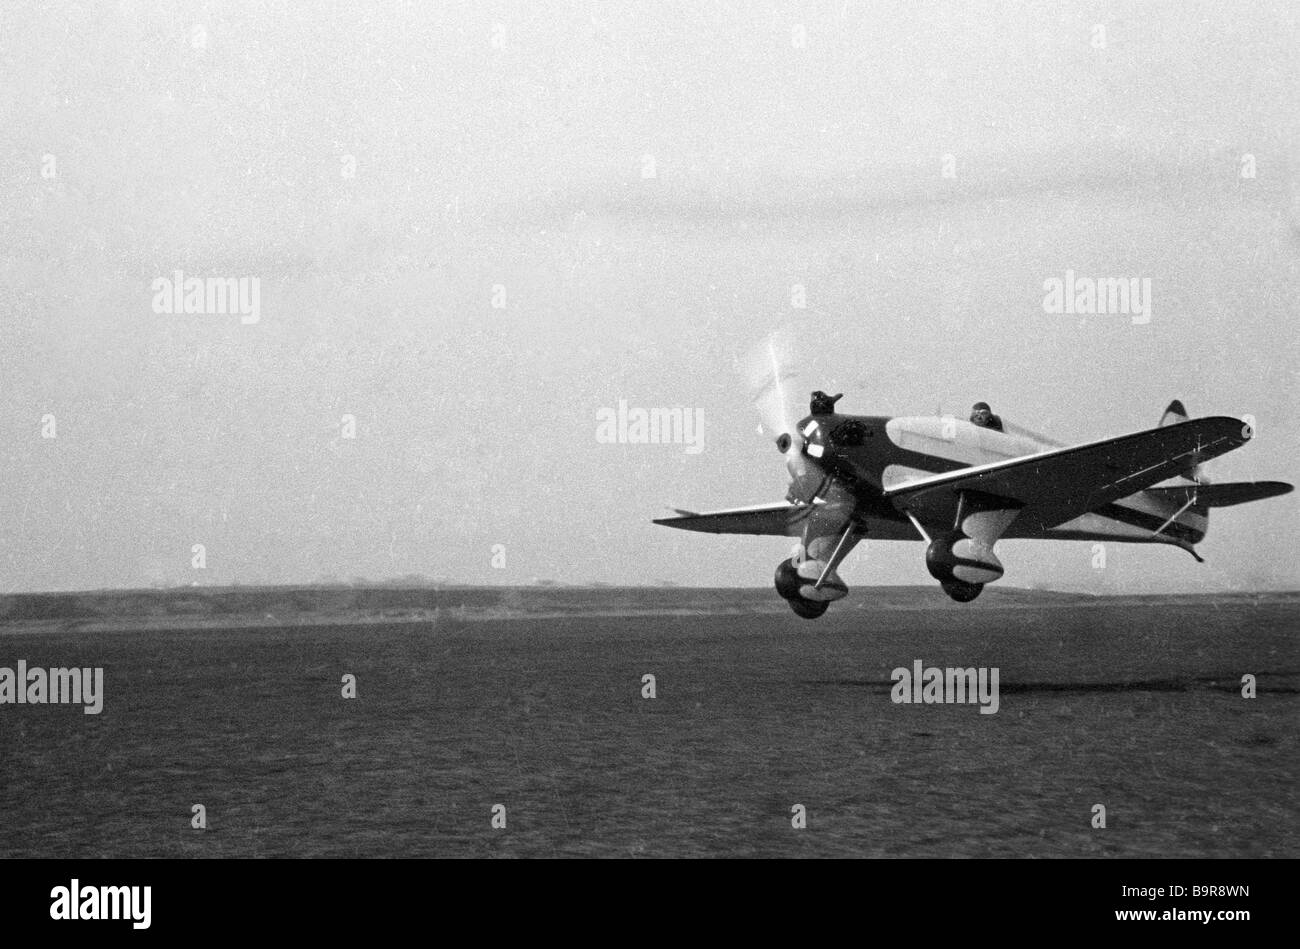 The UT 1 aircraft taking off from the airfield - Stock Image